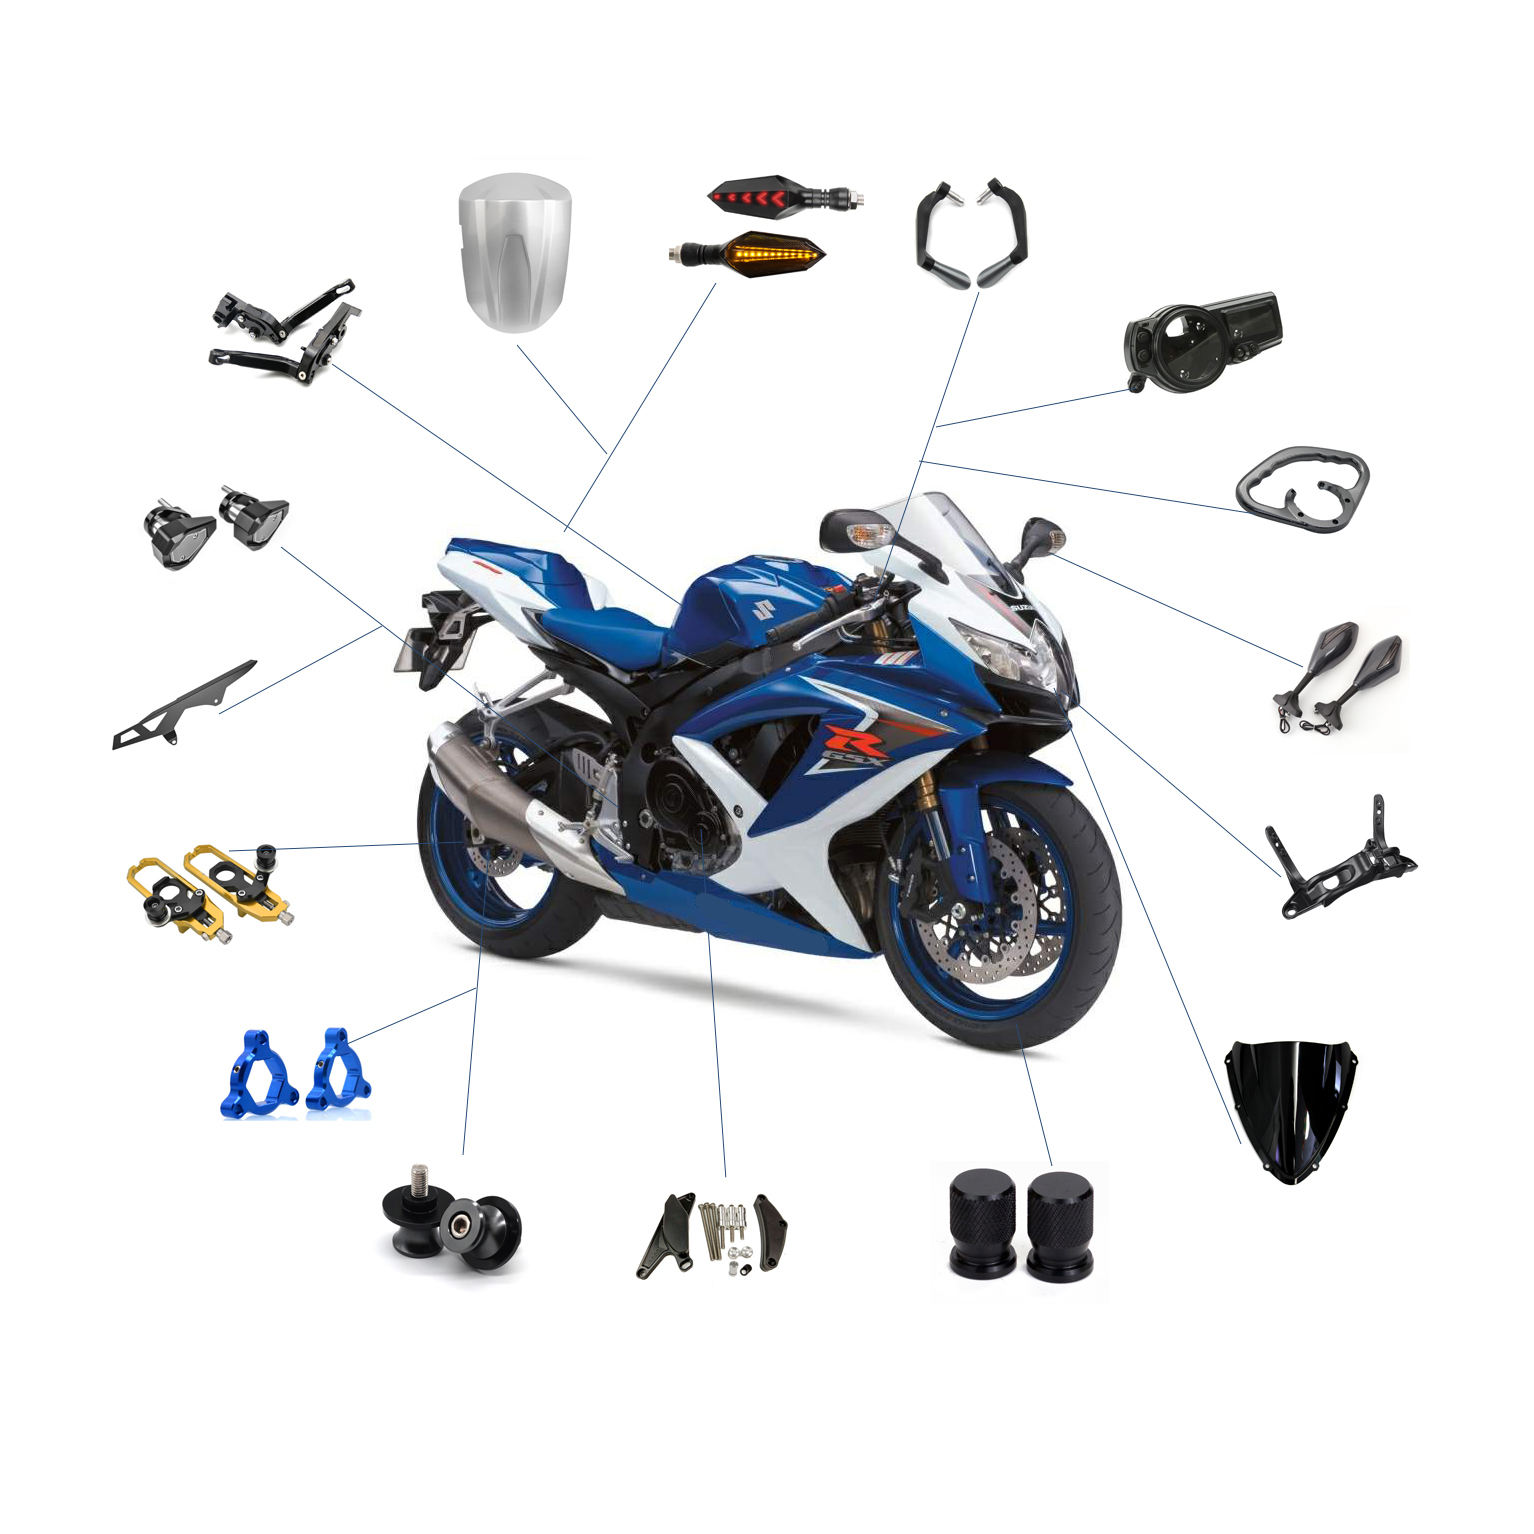 Realzion Motorcycle Accessories Modification Chinese Wholesale Motorbike Moto Dirtbike Body Systems Parts Spare Parts For Suzuki